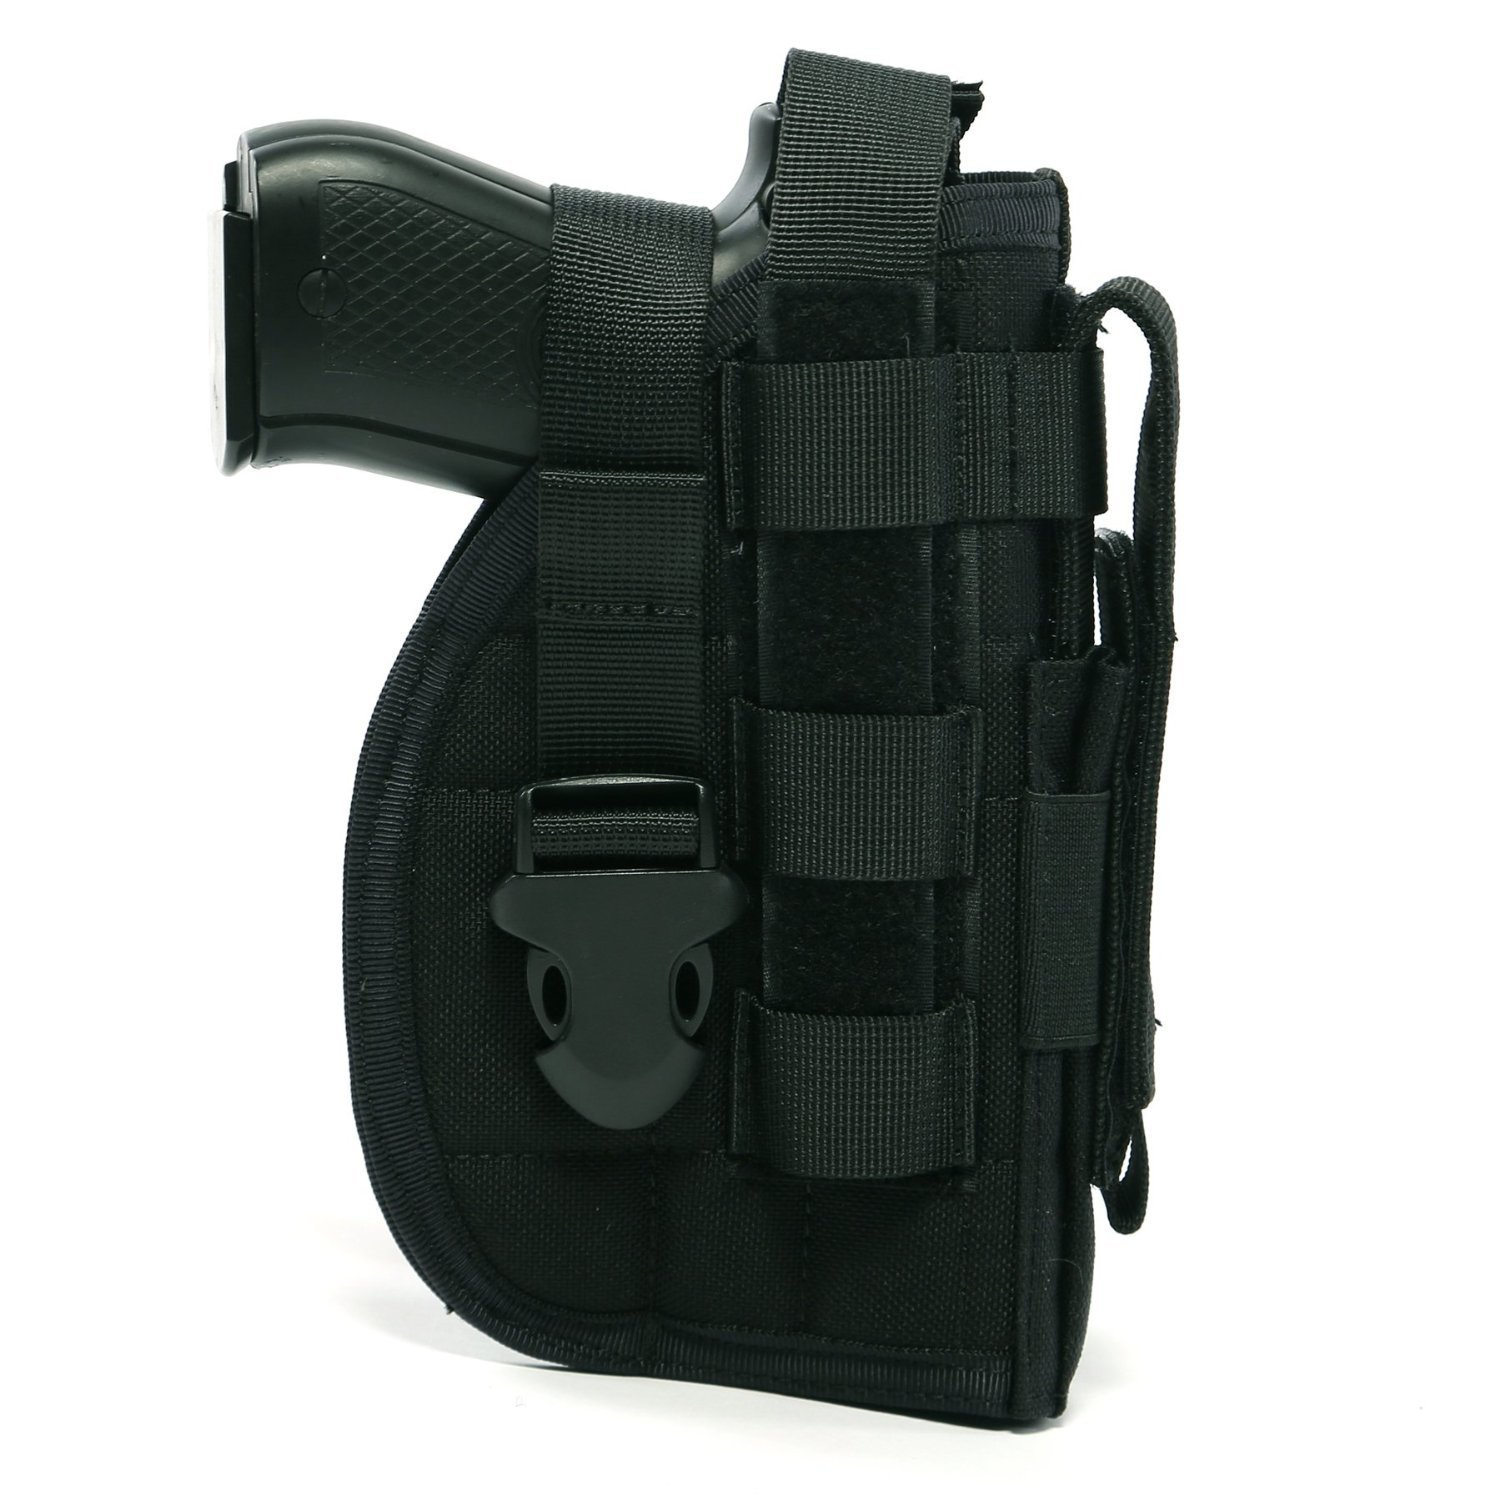 Tactical Molle Nylon Modular Holster with Mag Pouch by Yisibo